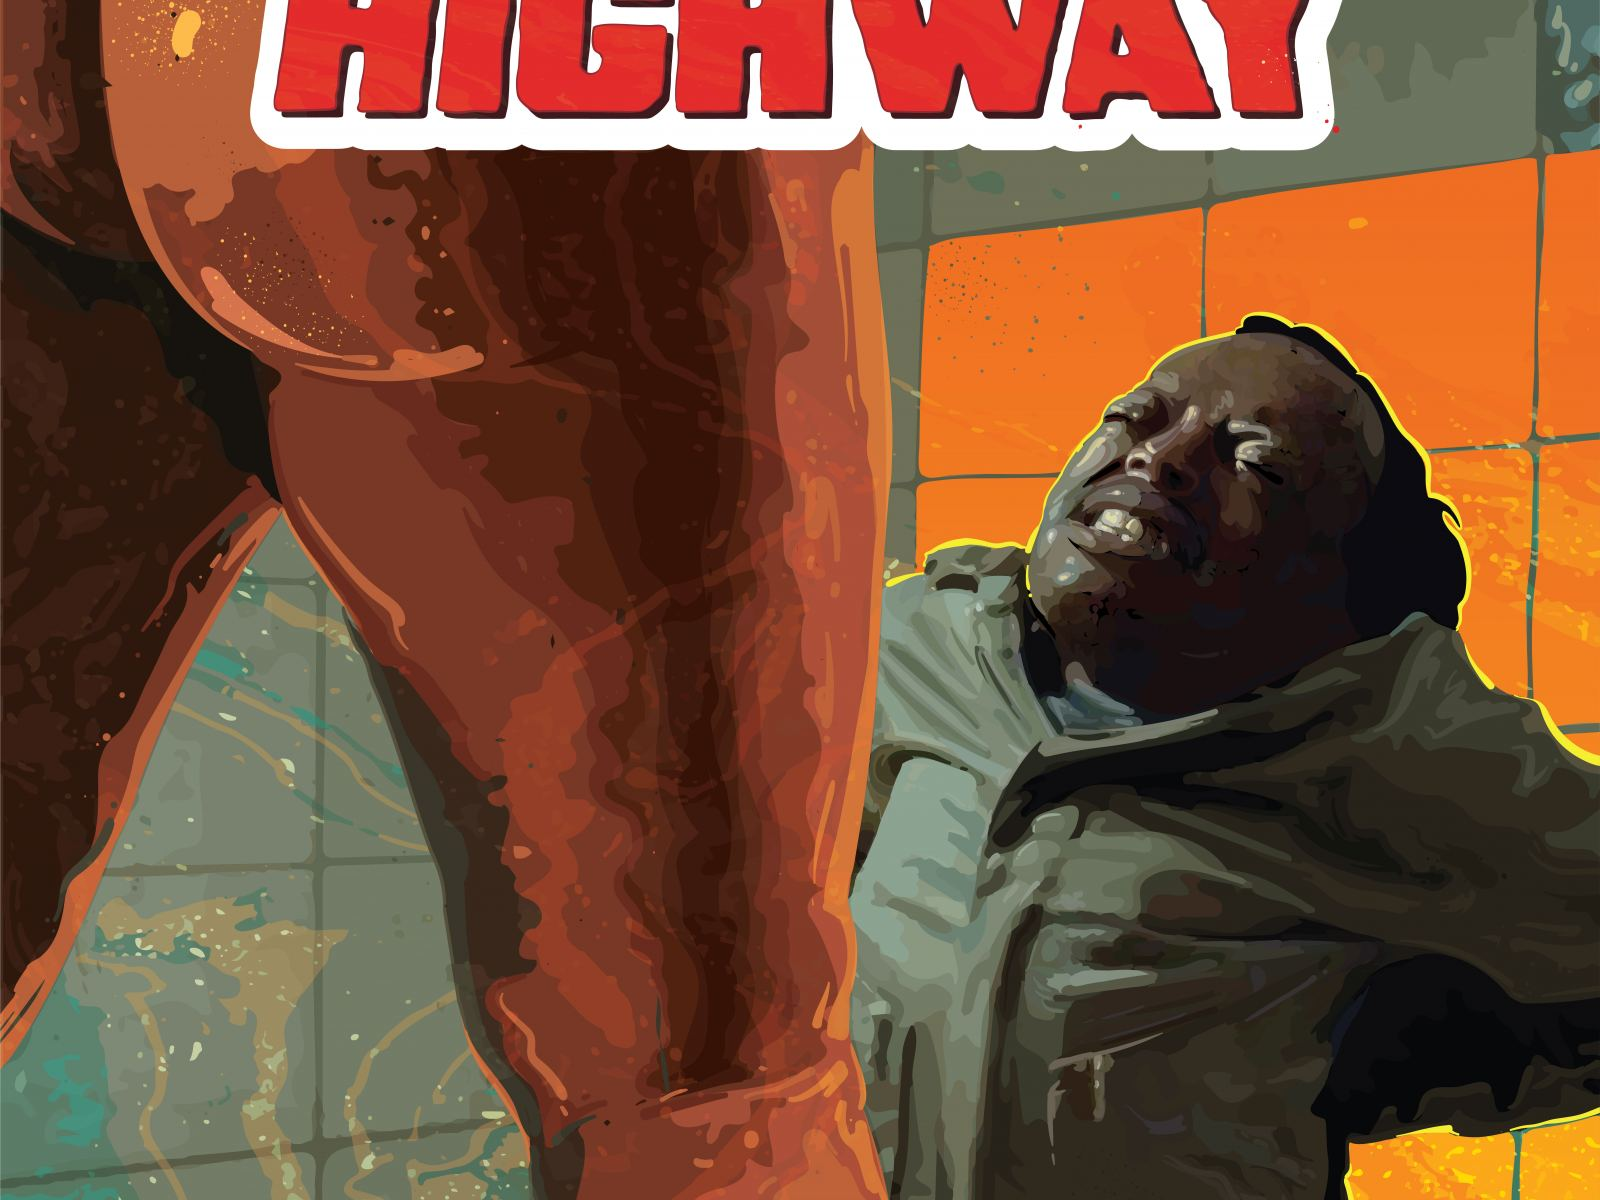 JESUS SHOWS YOU THE WAY TO THE HIGHWAY - Film Maudit 2.0 Film Festival